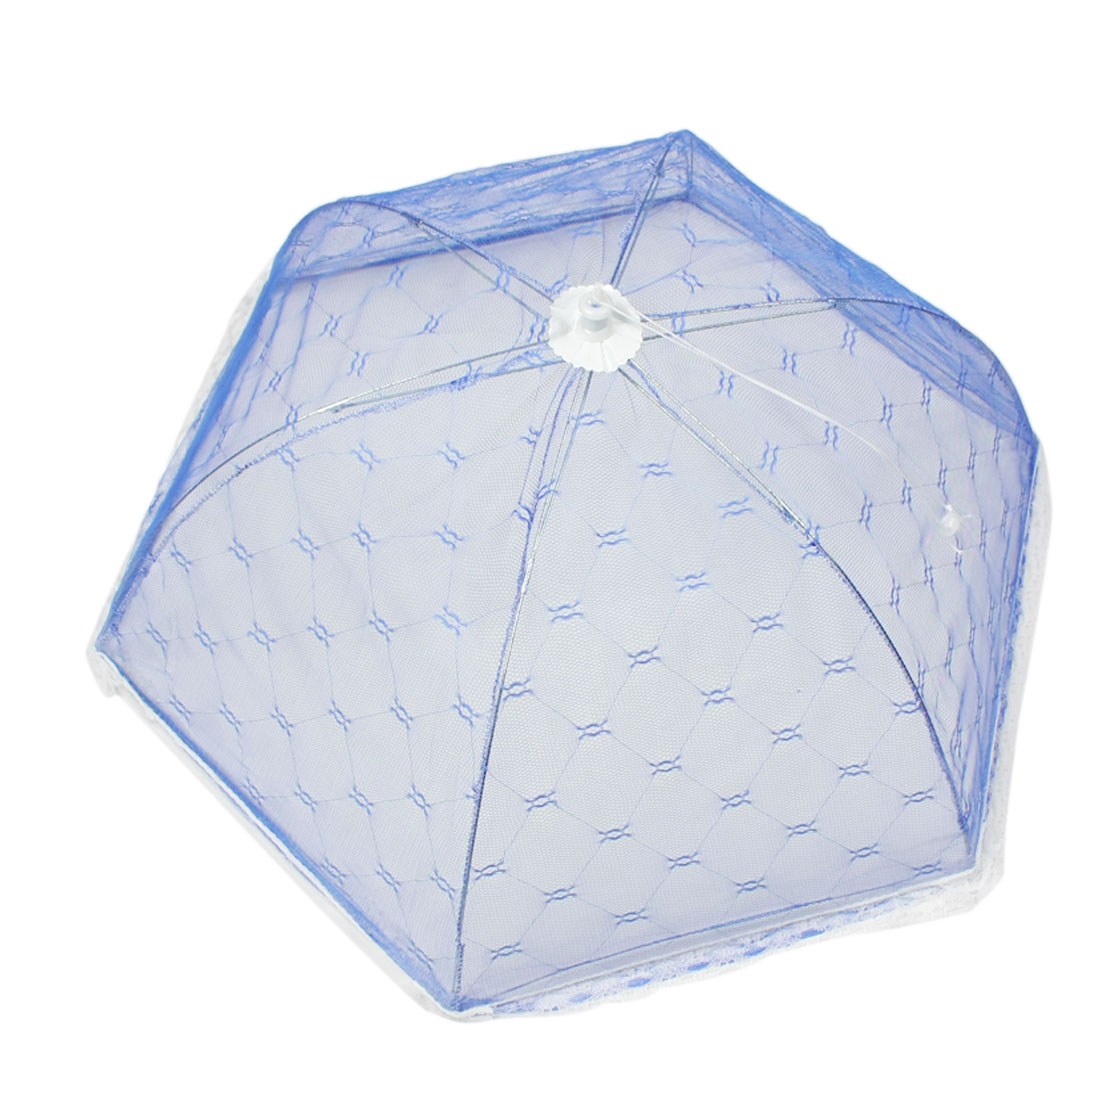 Camping Picnic Rhombus Pattern Collapsible Food Cover Umbrella Blue